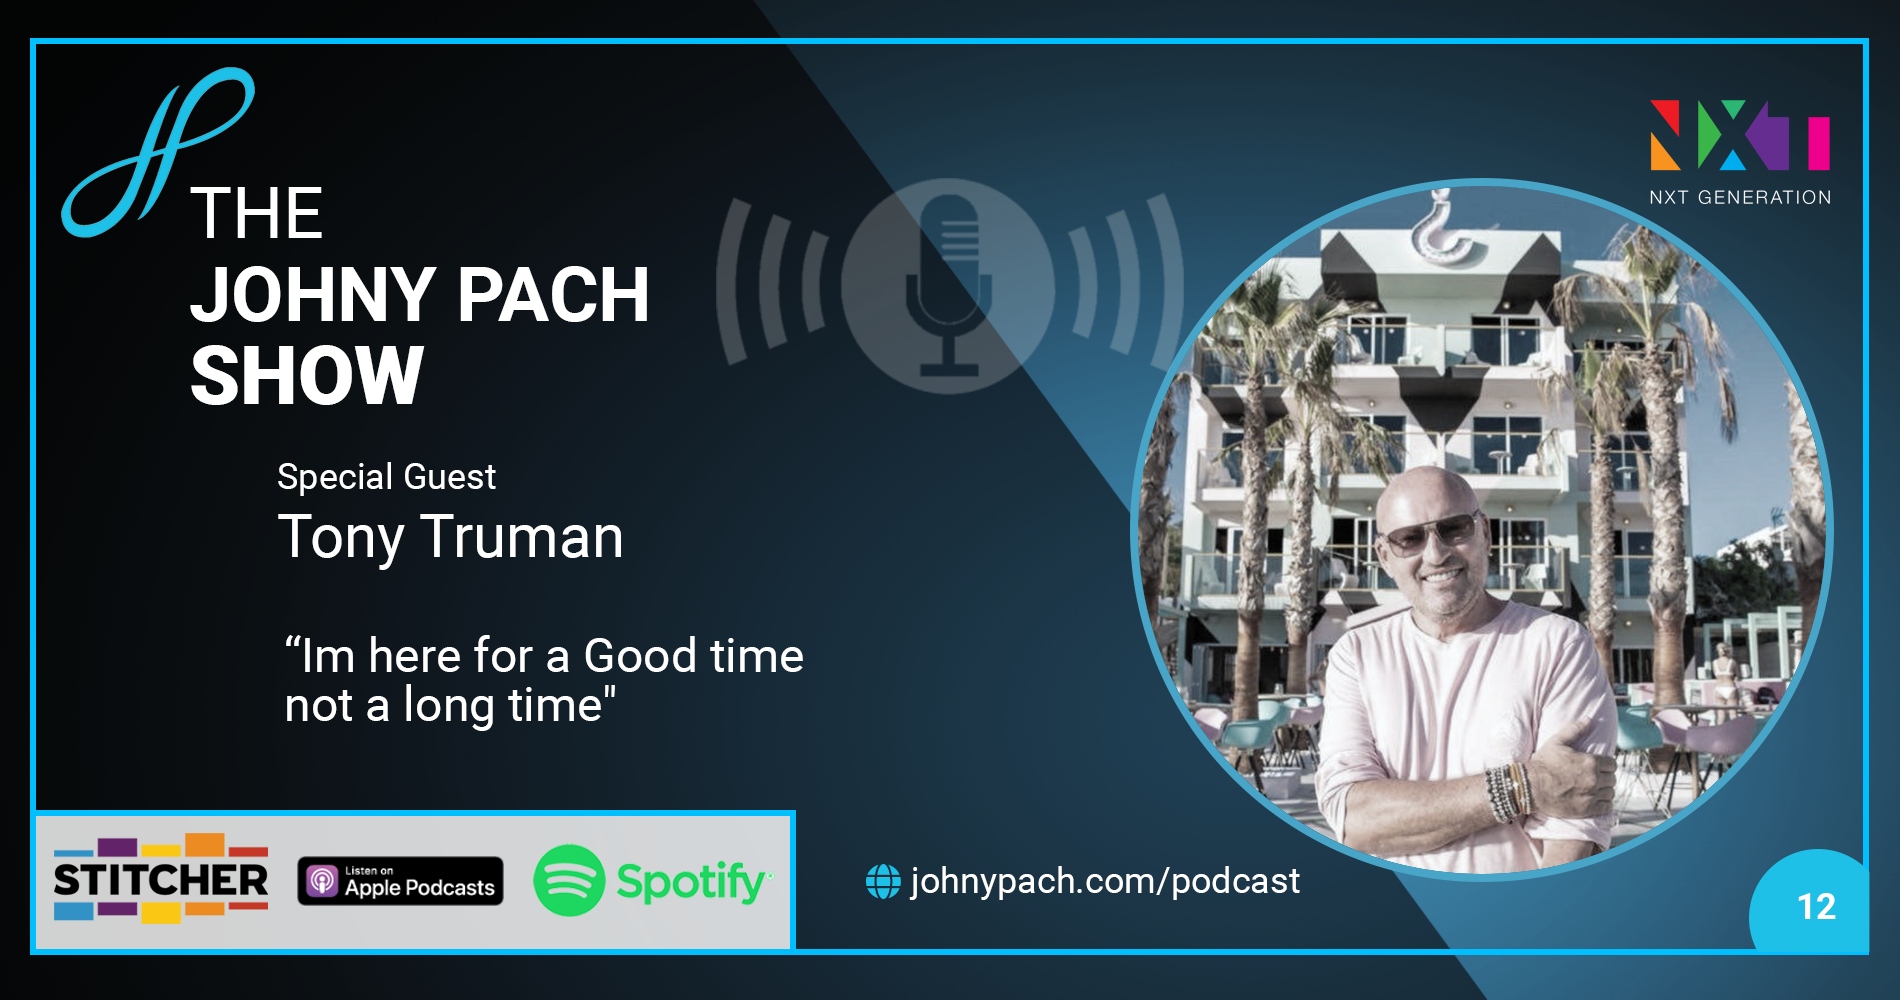 //johnypach.com/wp-content/uploads/2020/06/Podcast-tonytruman-ep12-1900x1000-1.png